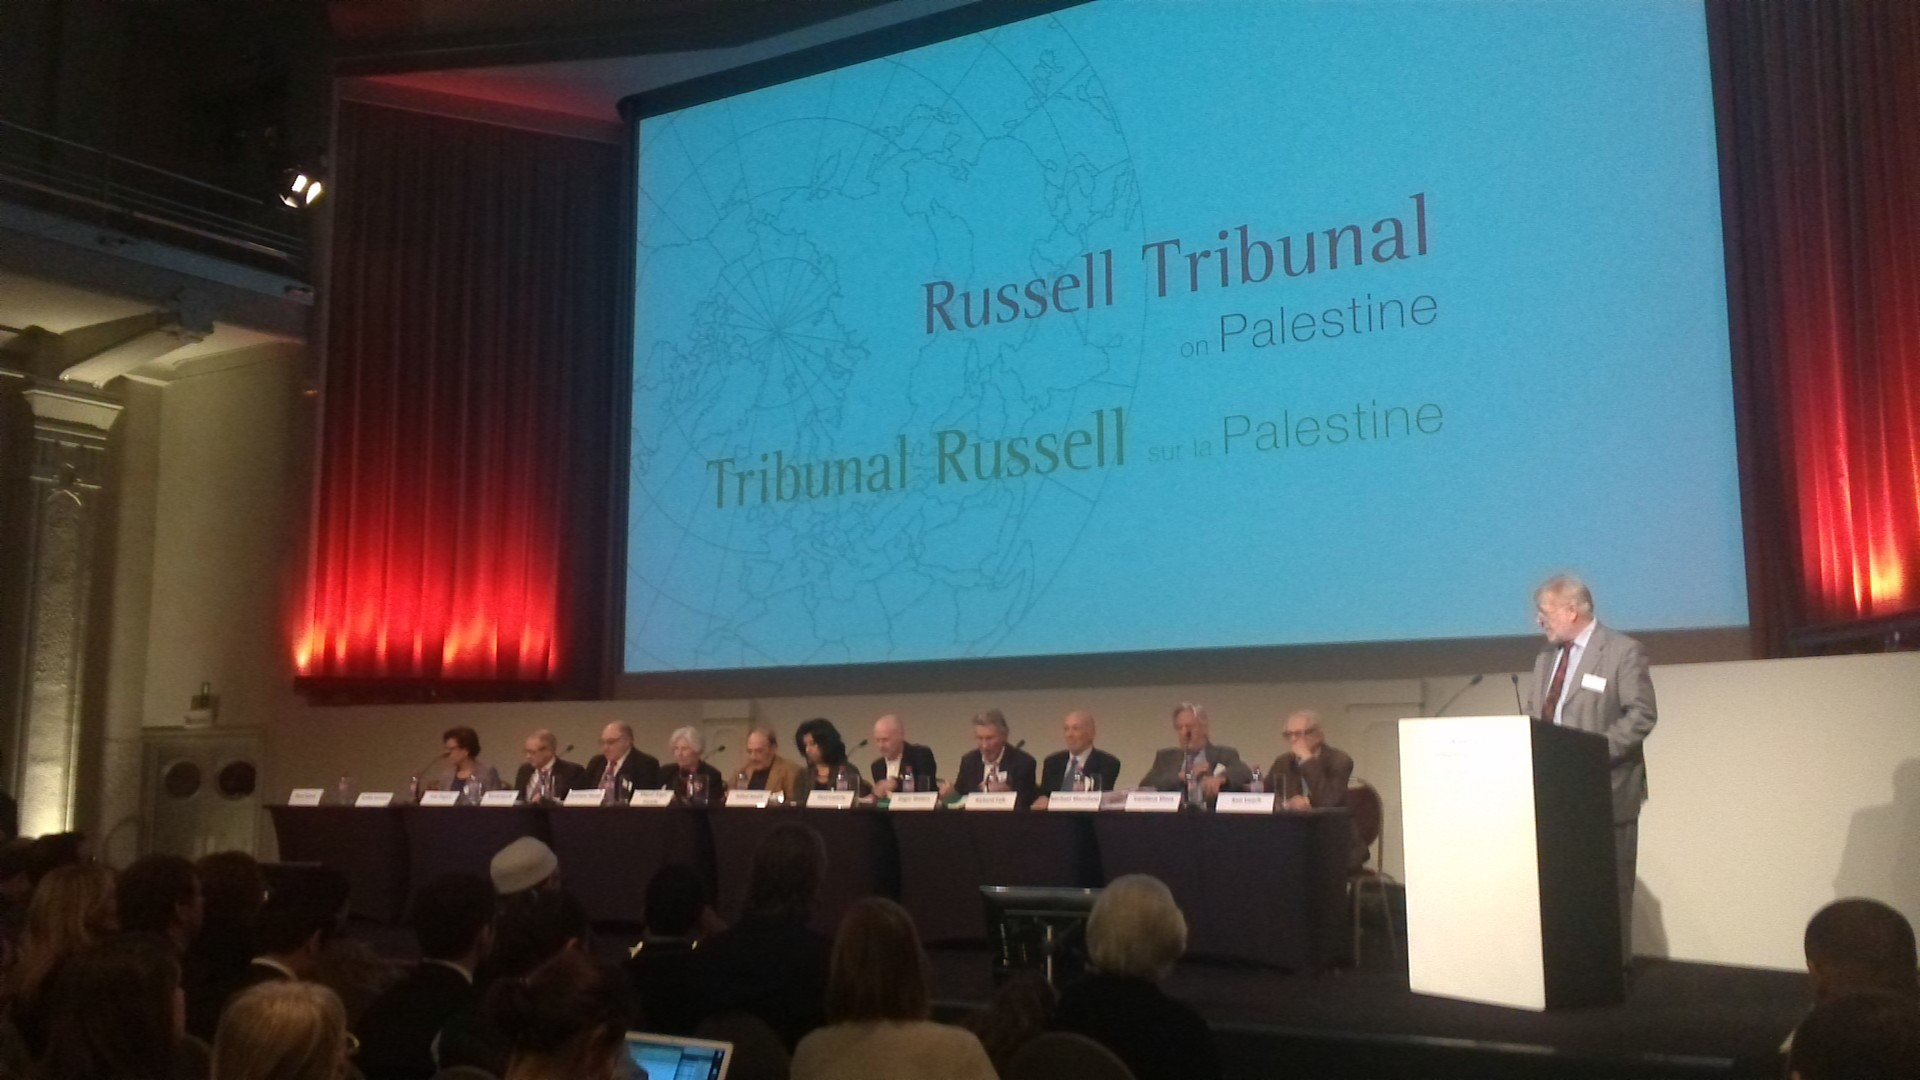 Russell Tribunal finds evidence of incitement to genocide, crimes against humanity in Gaza